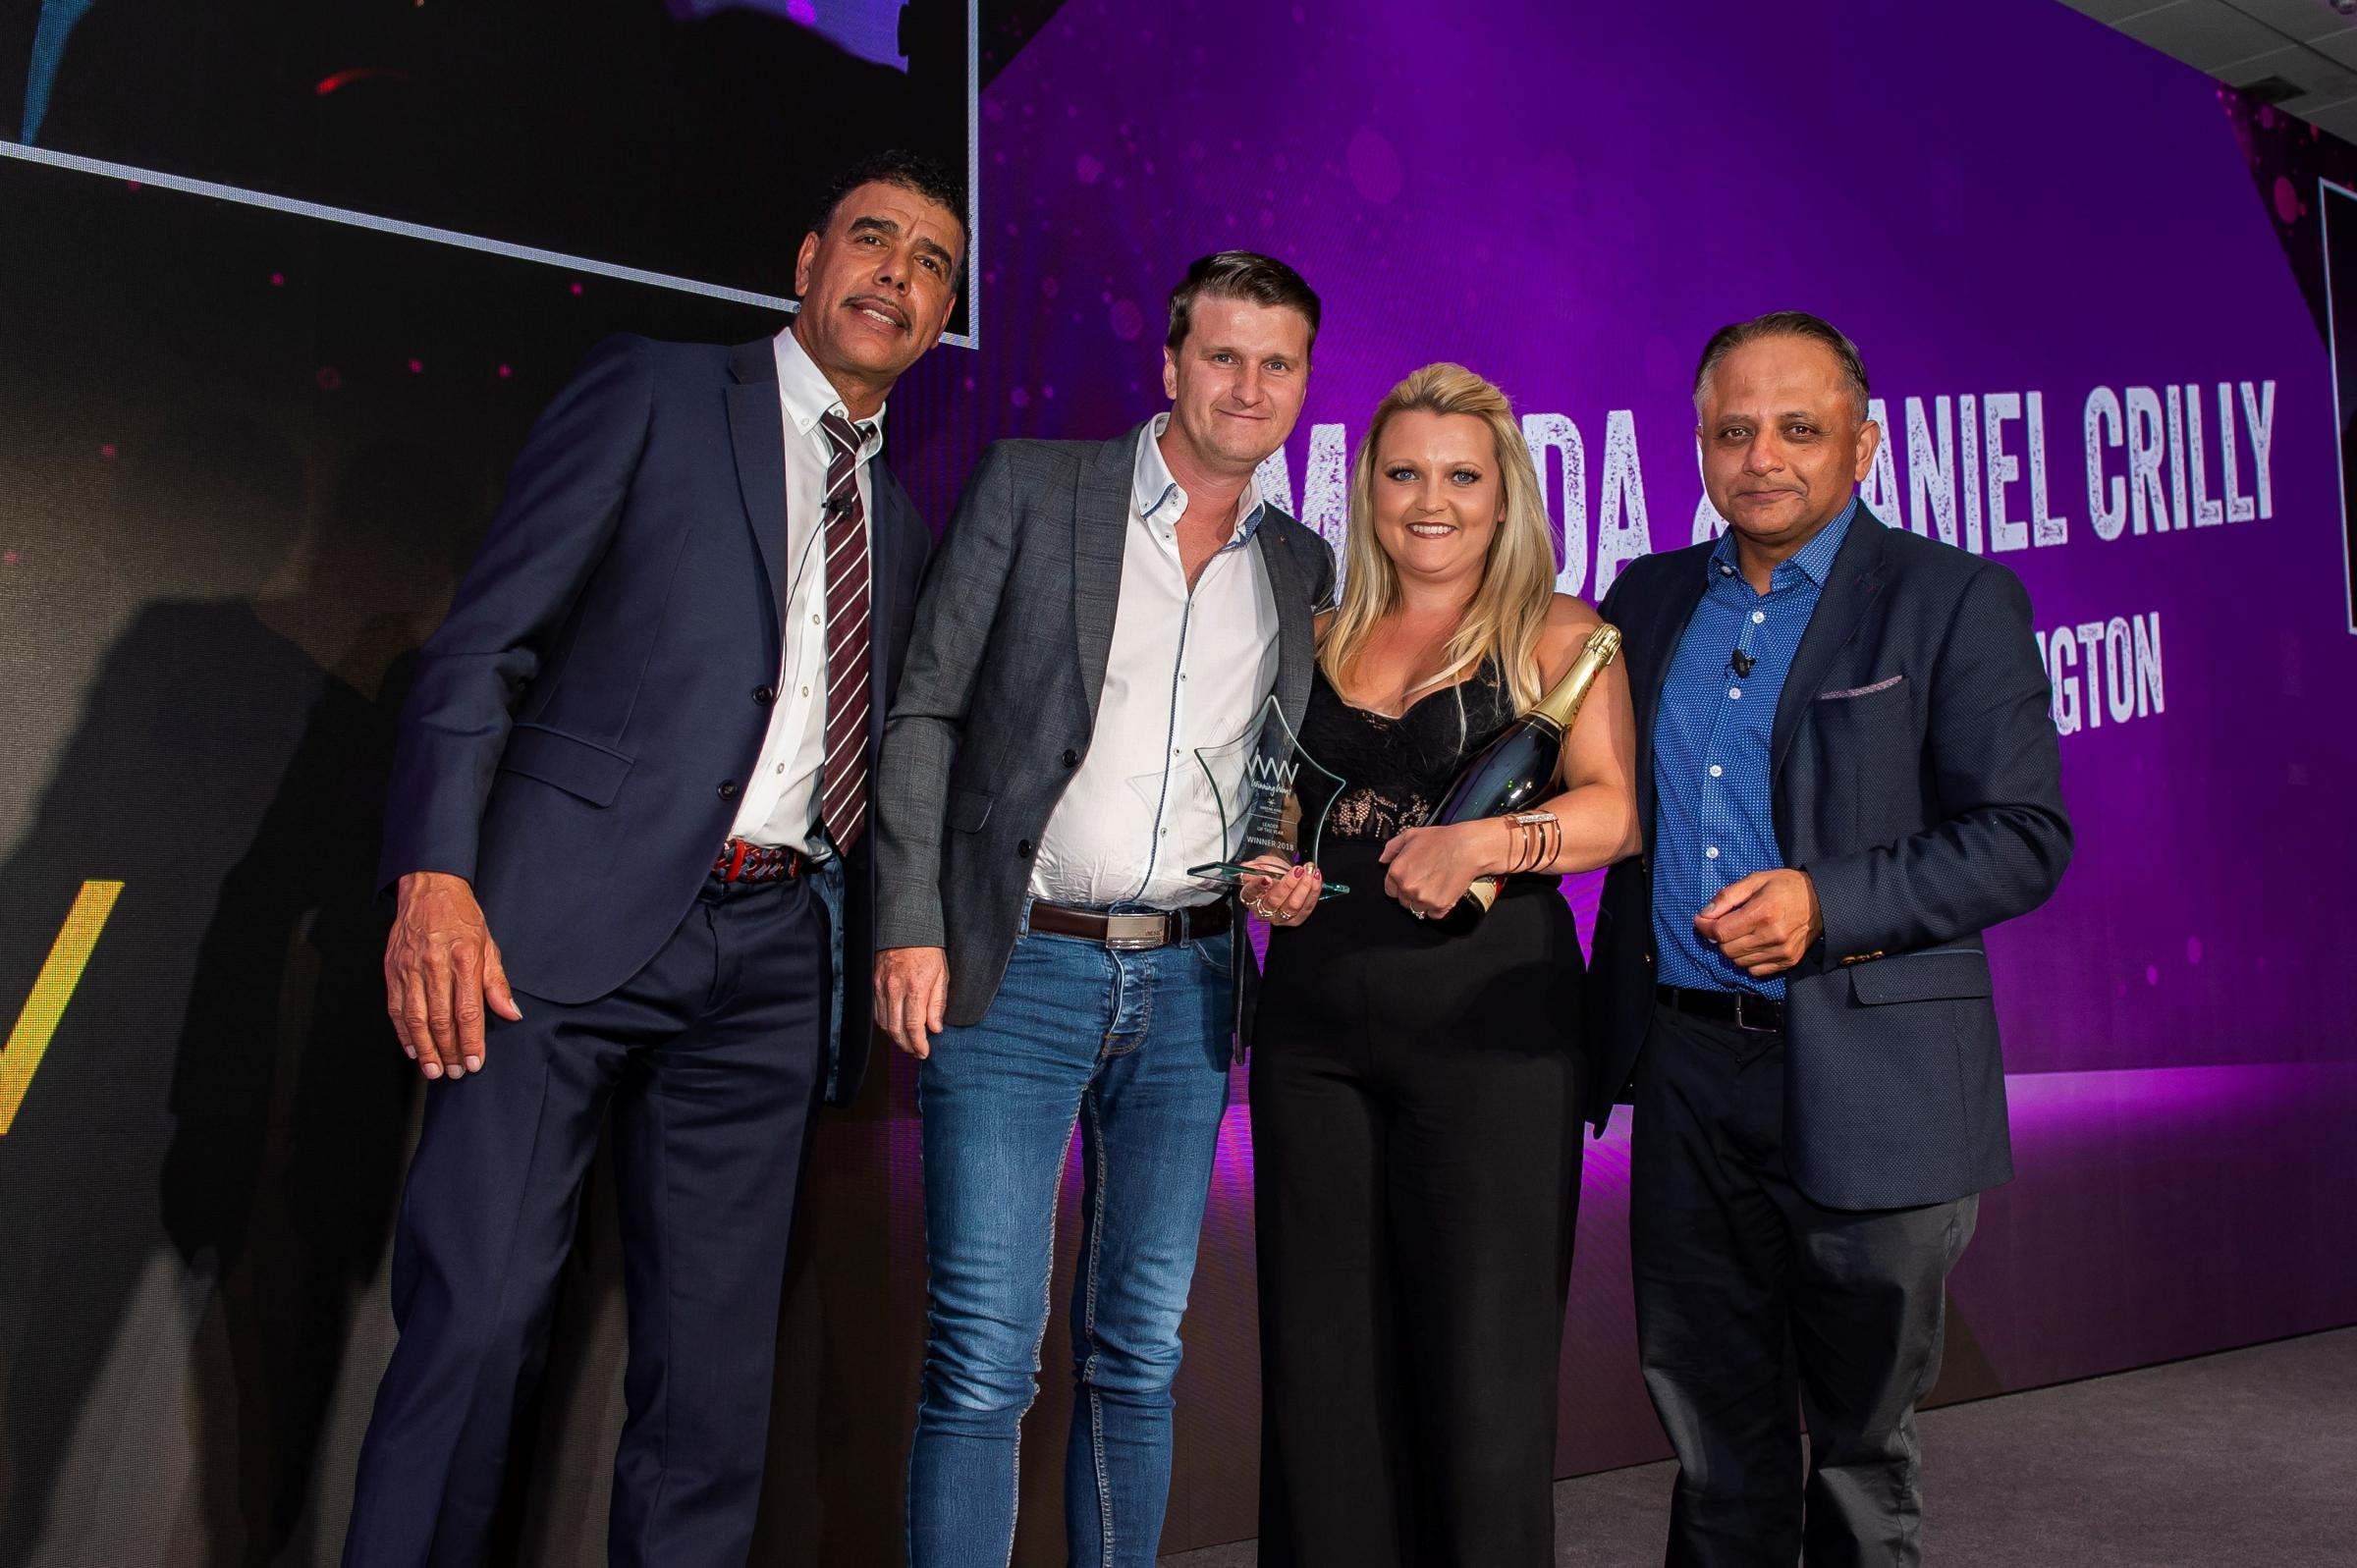 Chris Kamara, Amanda and Danny Crilly and Greene King's CEO Rooney Anand